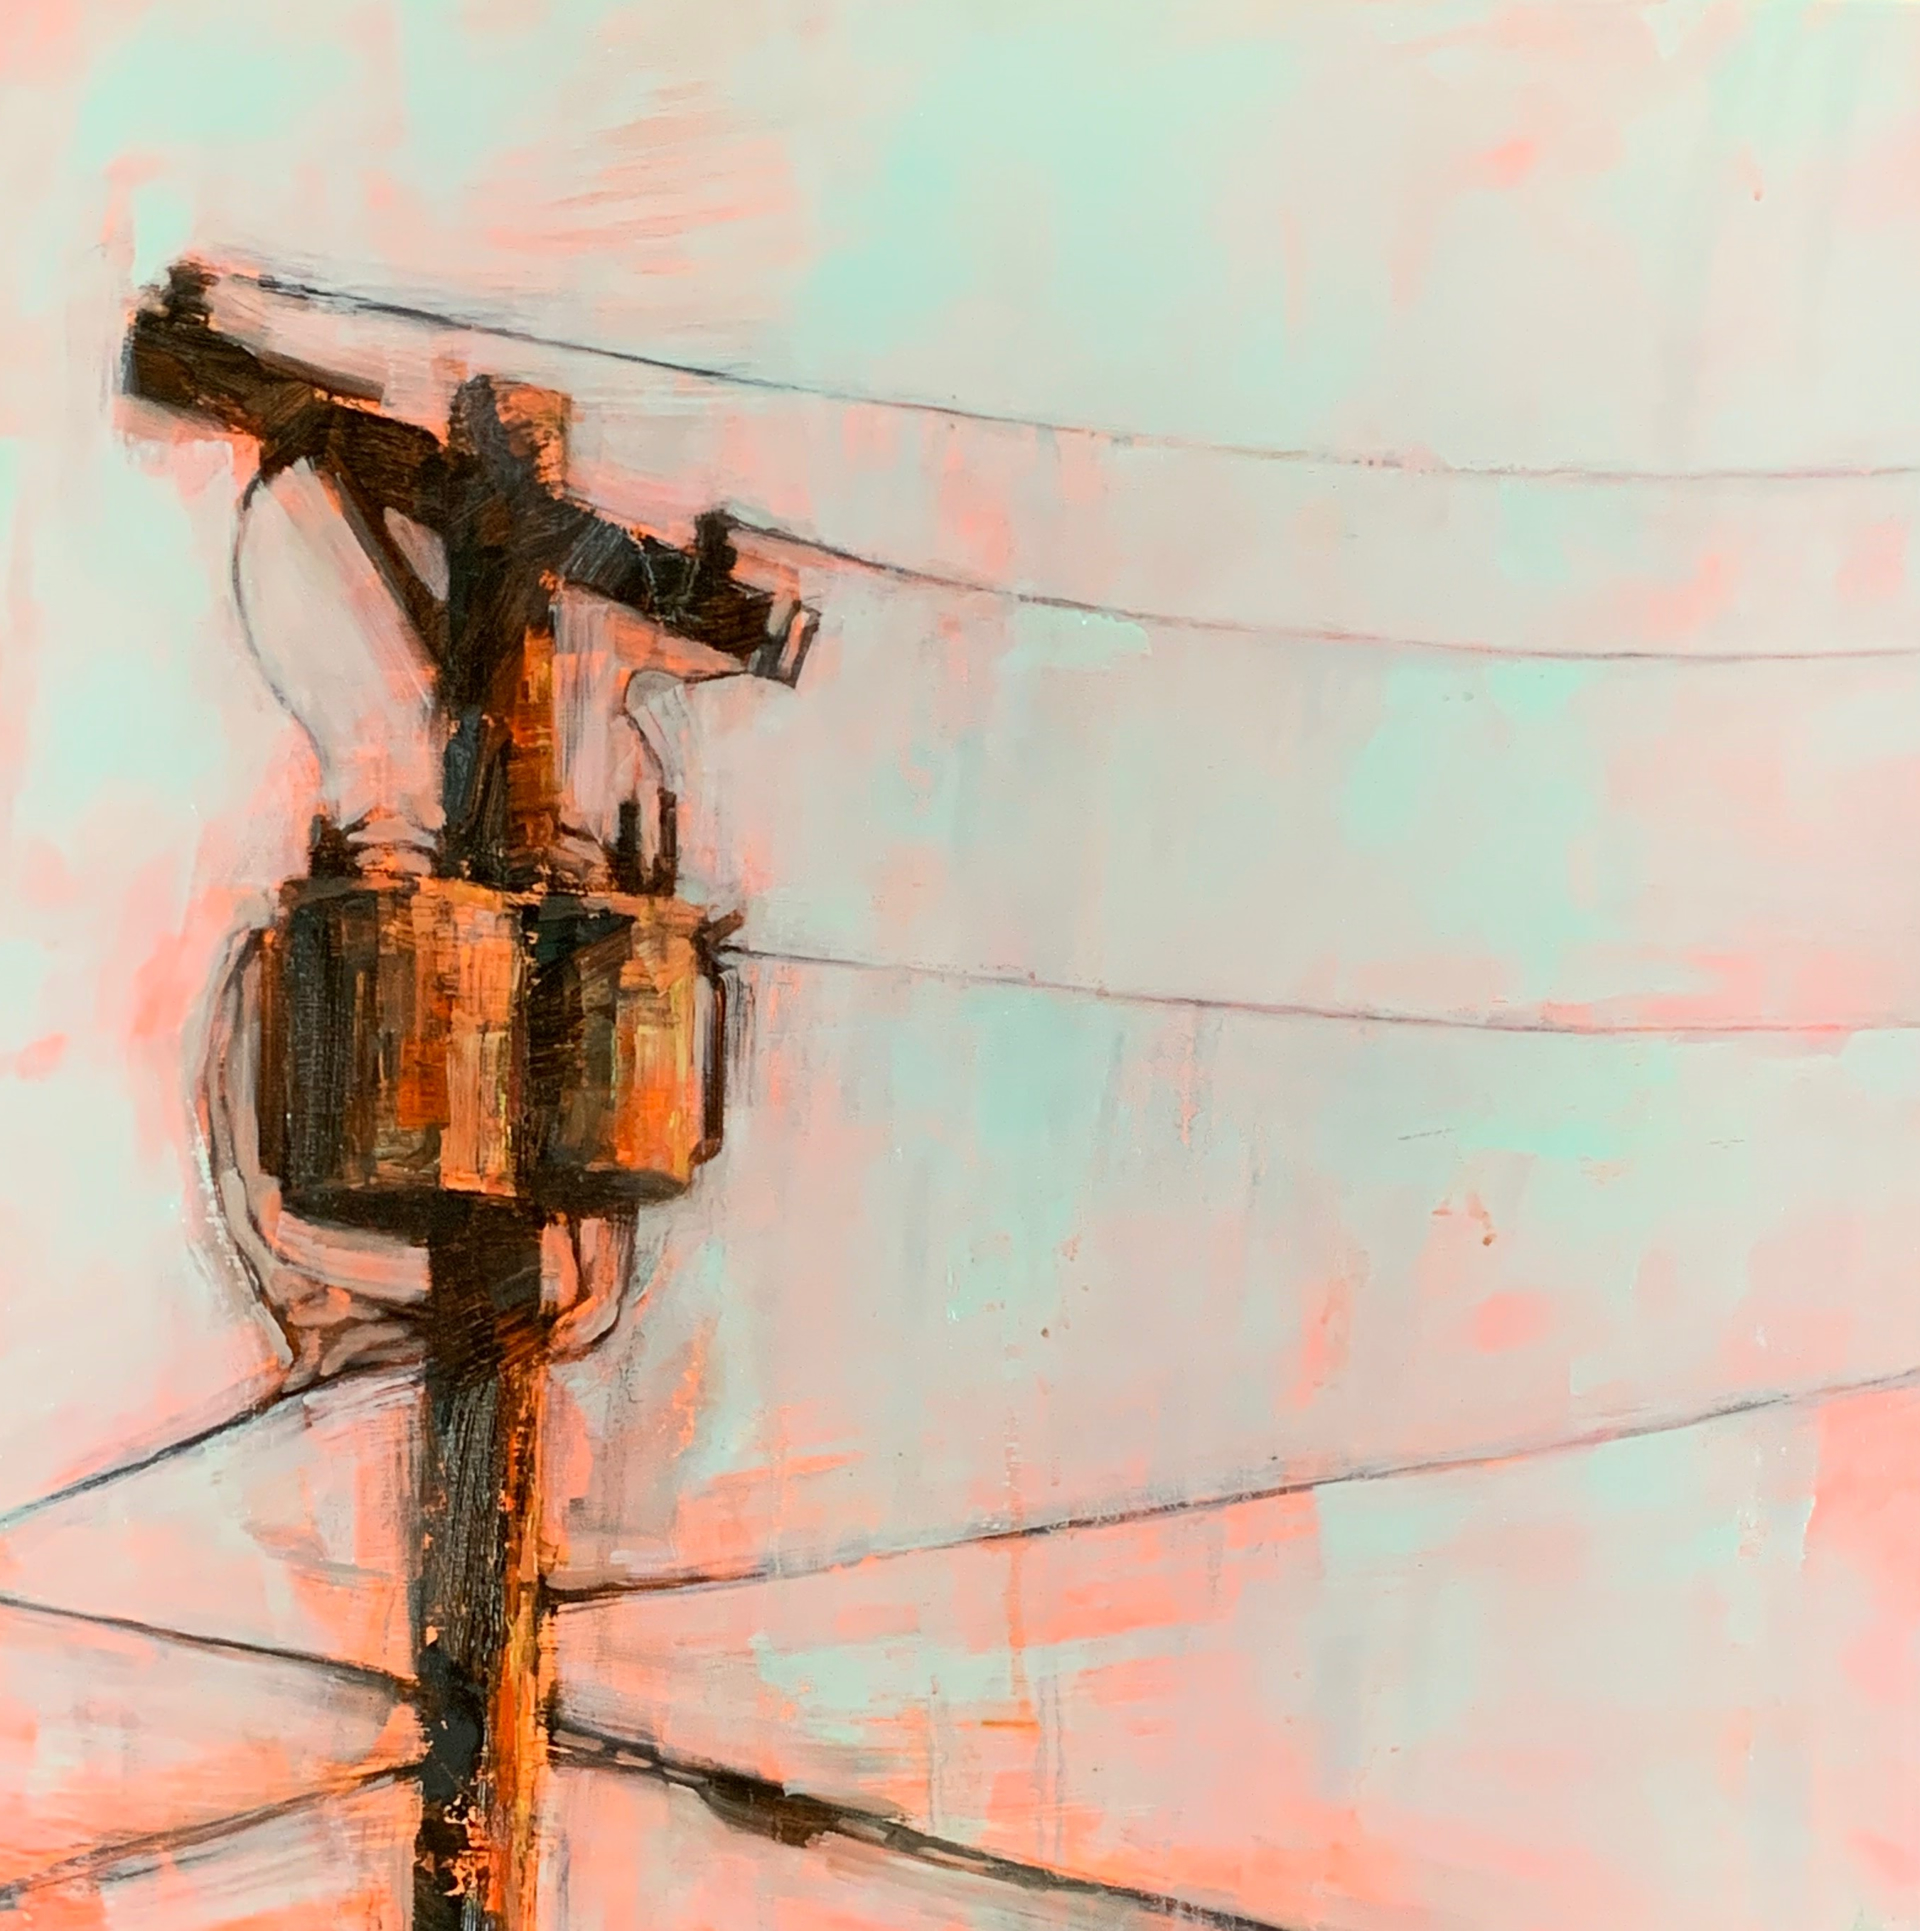 wires 2 by Angie Renfro